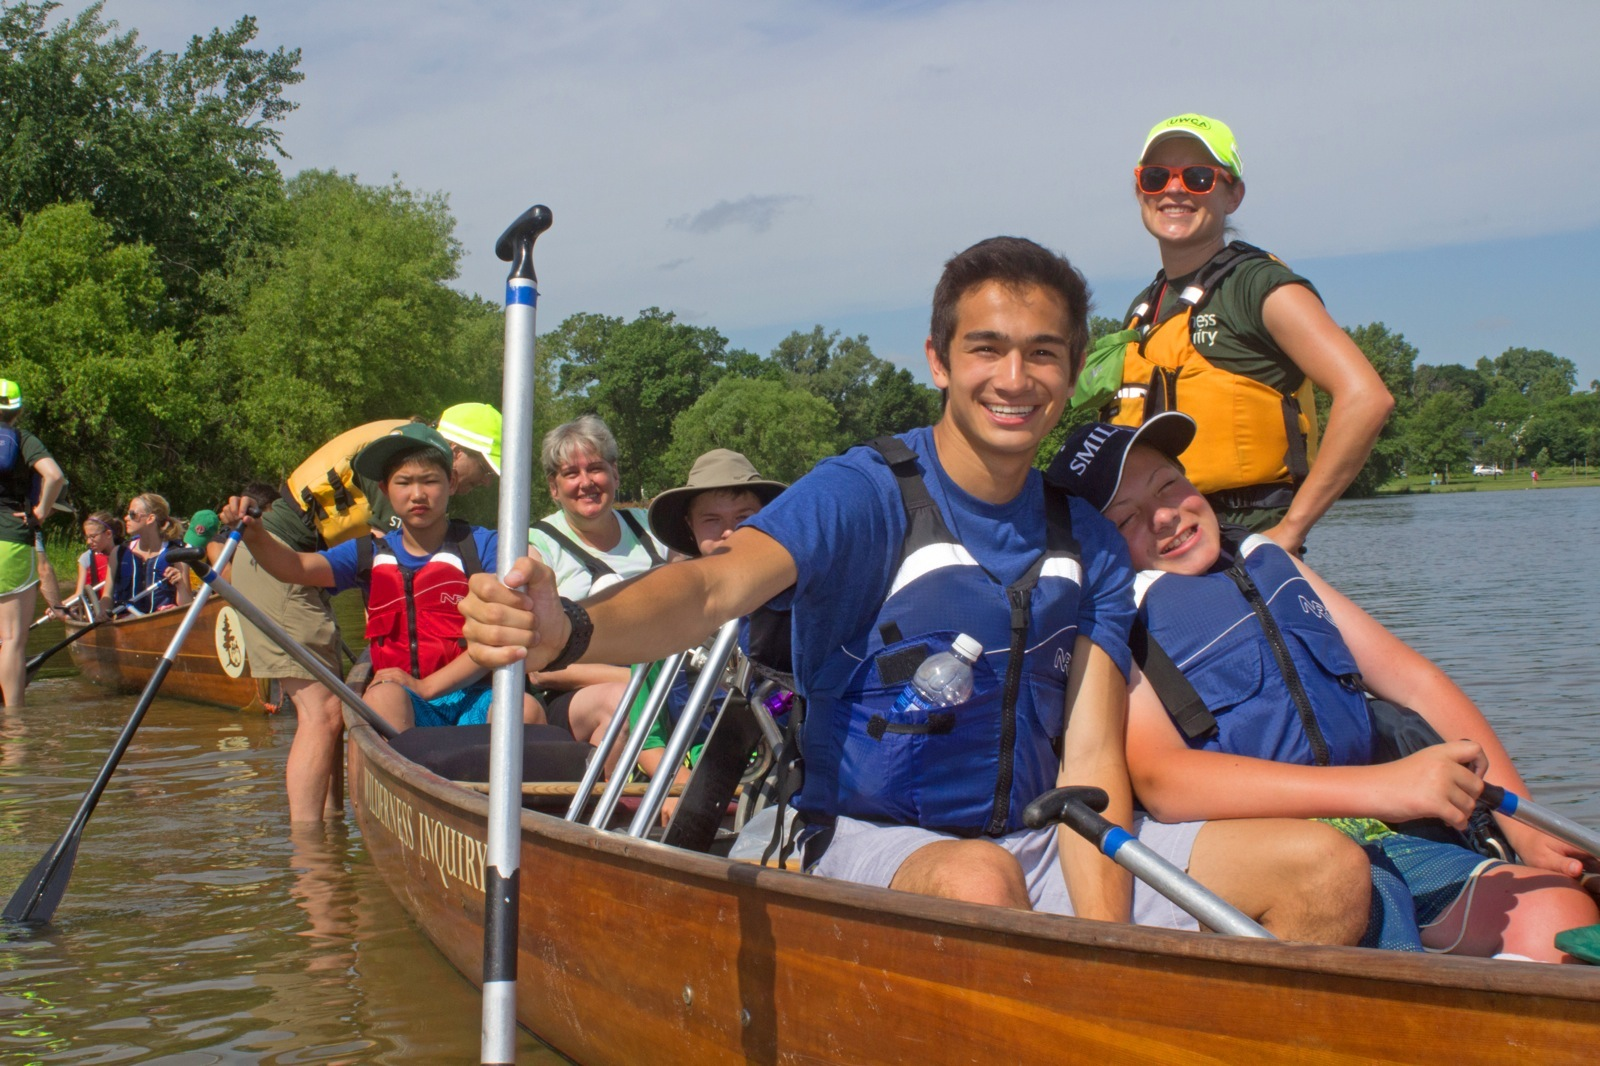 Participants get ready to take off down the river in their canoe at Minneapolis Chain of Lakes.